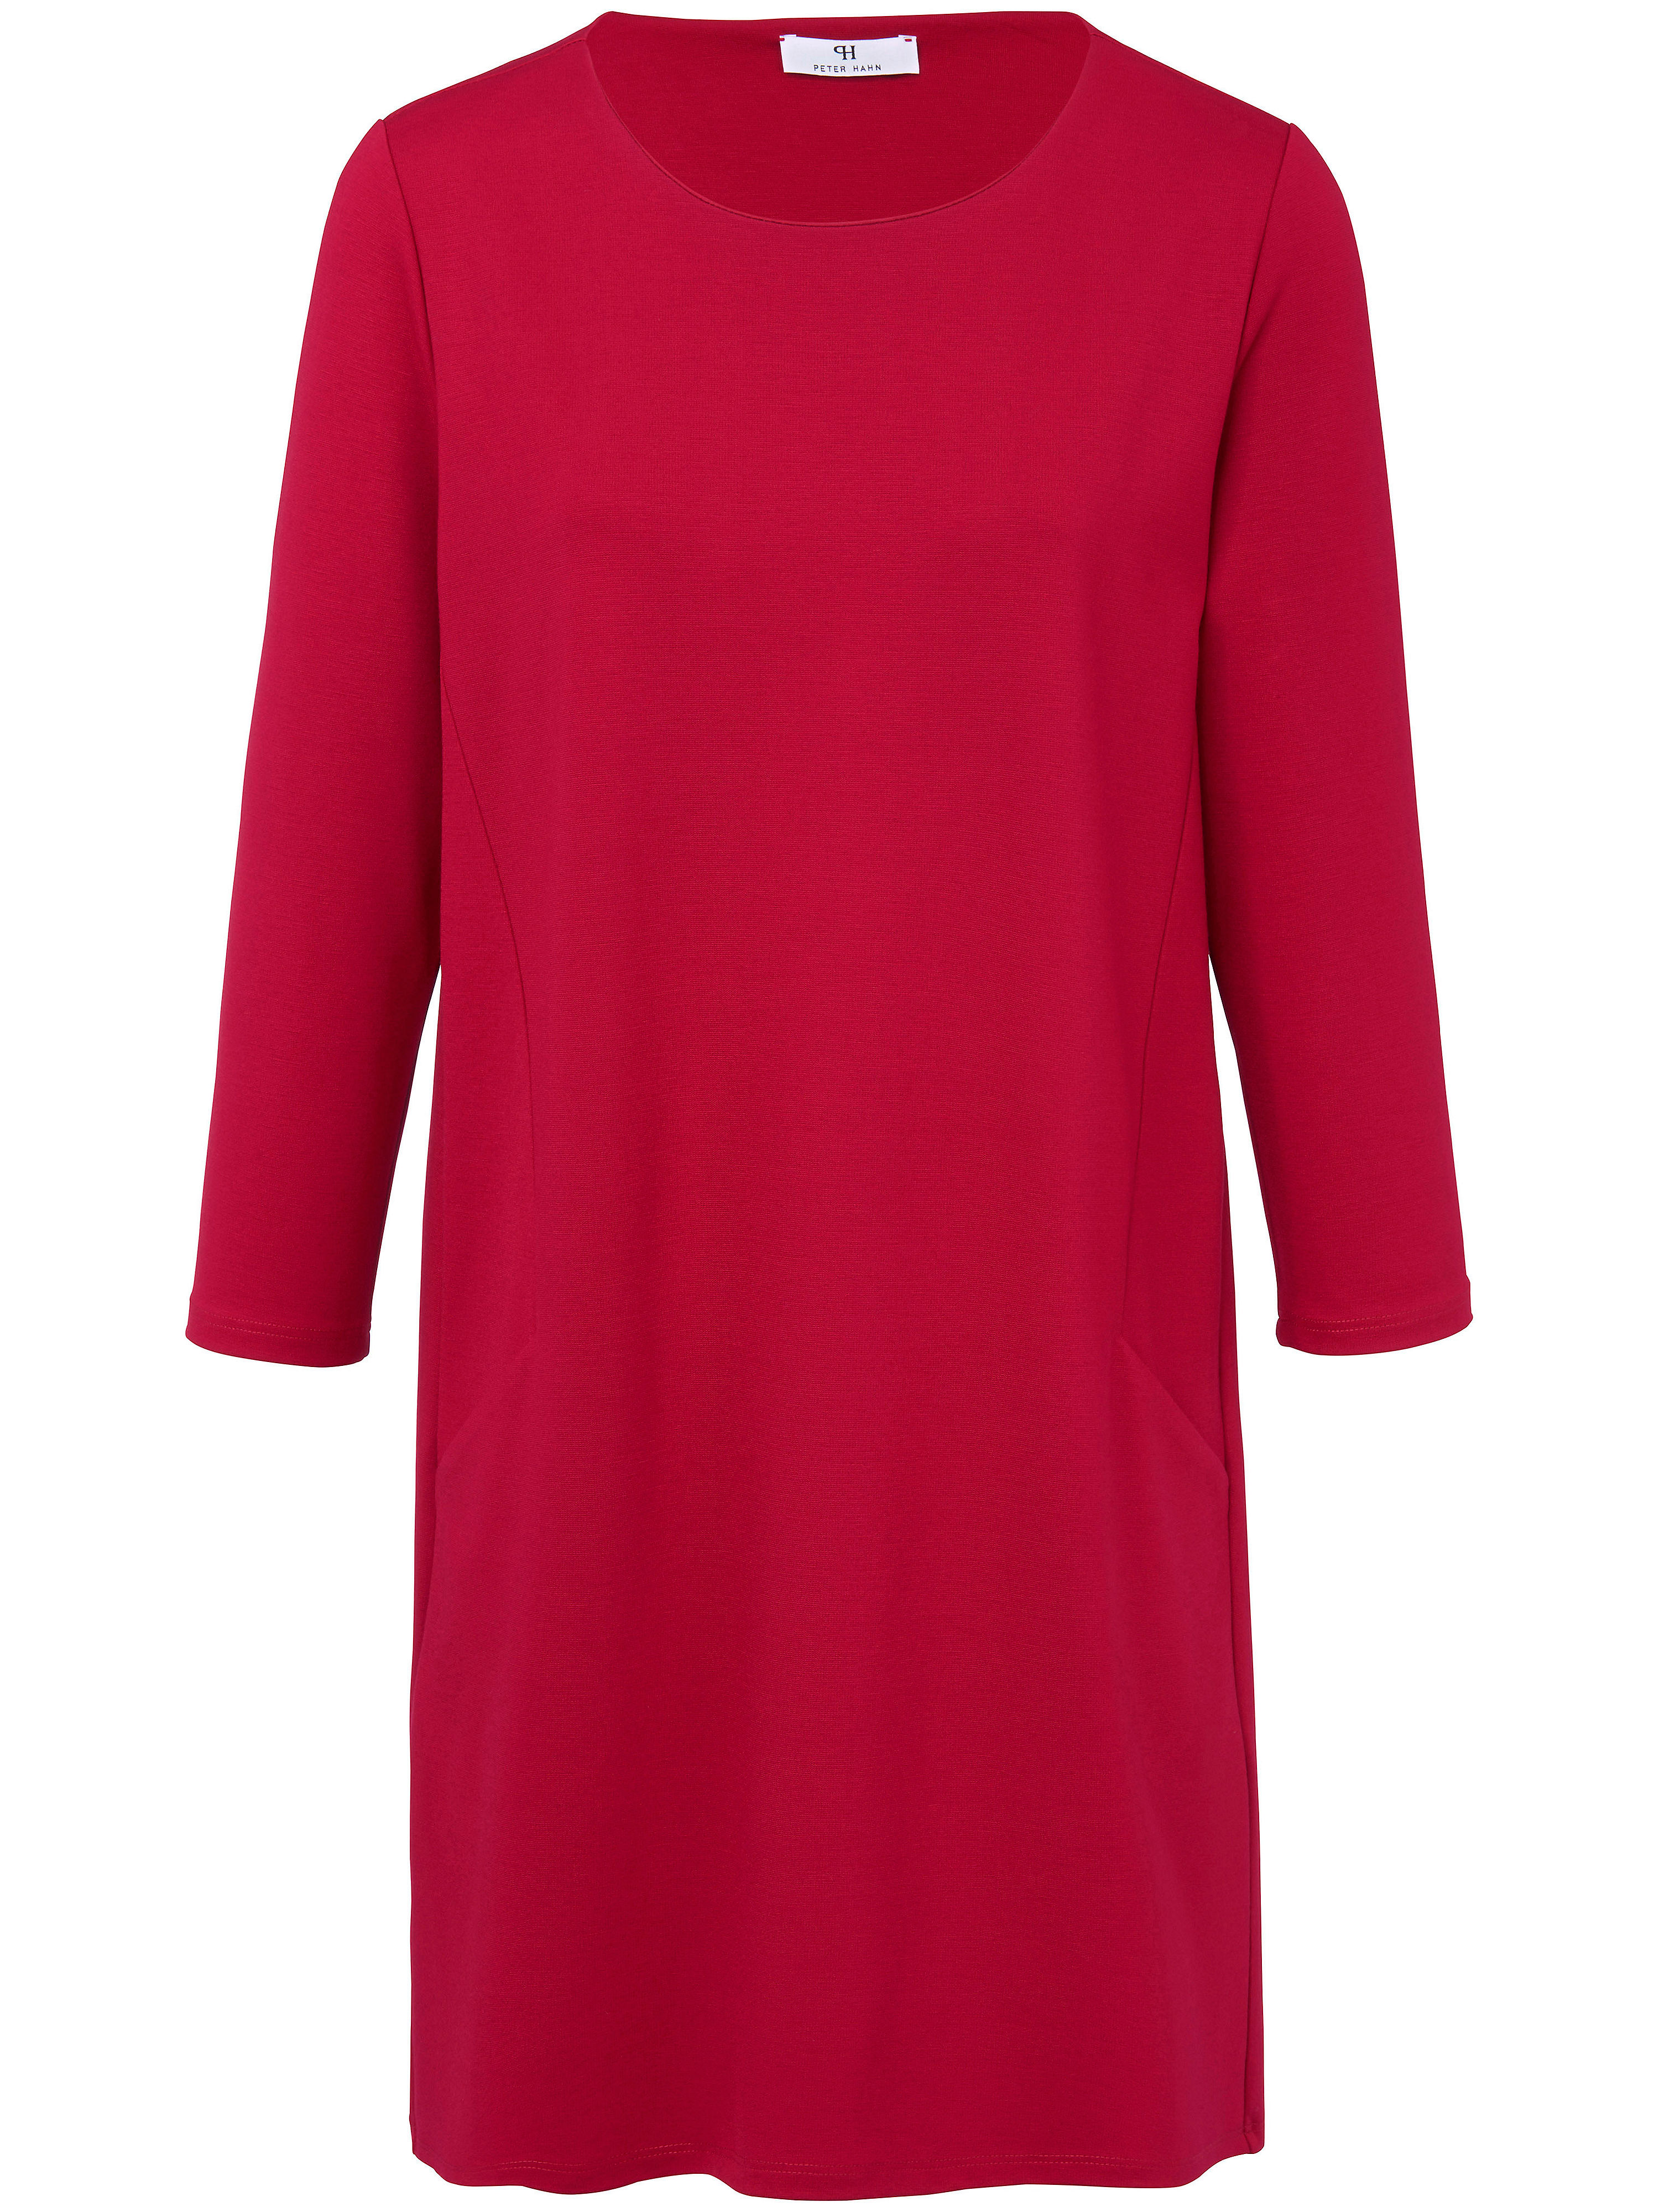 La robe jersey manches 7/8  Peter Hahn rouge taille 40